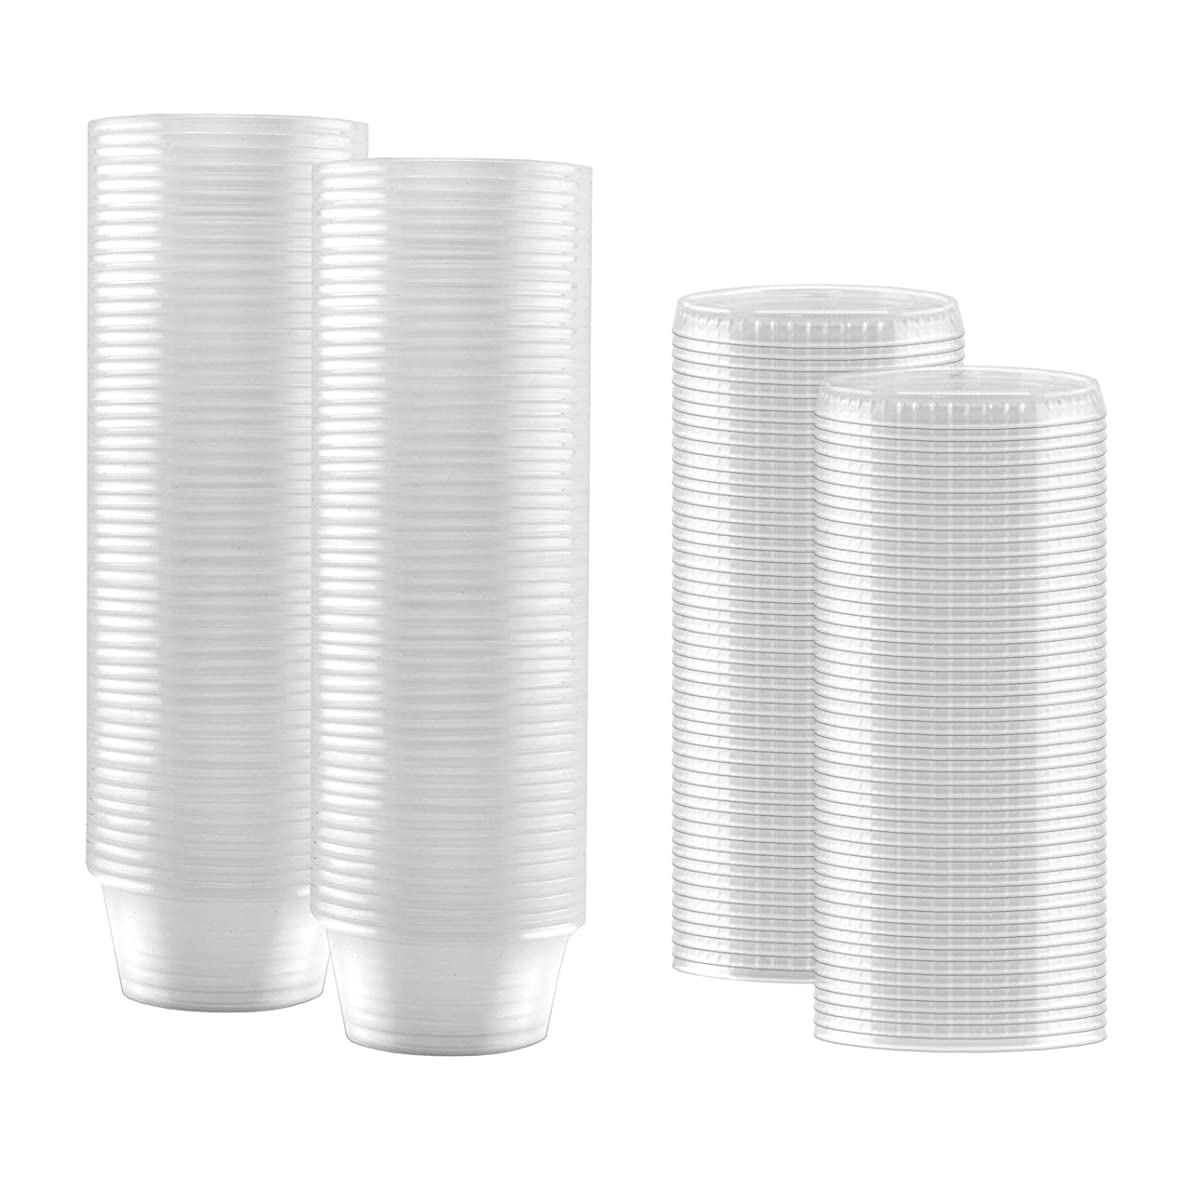 100-Pack of 2 Ounce Clear Plastic Jello Shot Cup Containers with Snap on Leak-Proof Lids –Jello Shooter Shot Cups -FDA-Approved -Compact Food Storage for Portion Control, 2 oz,Sauces, Liquid, Dips